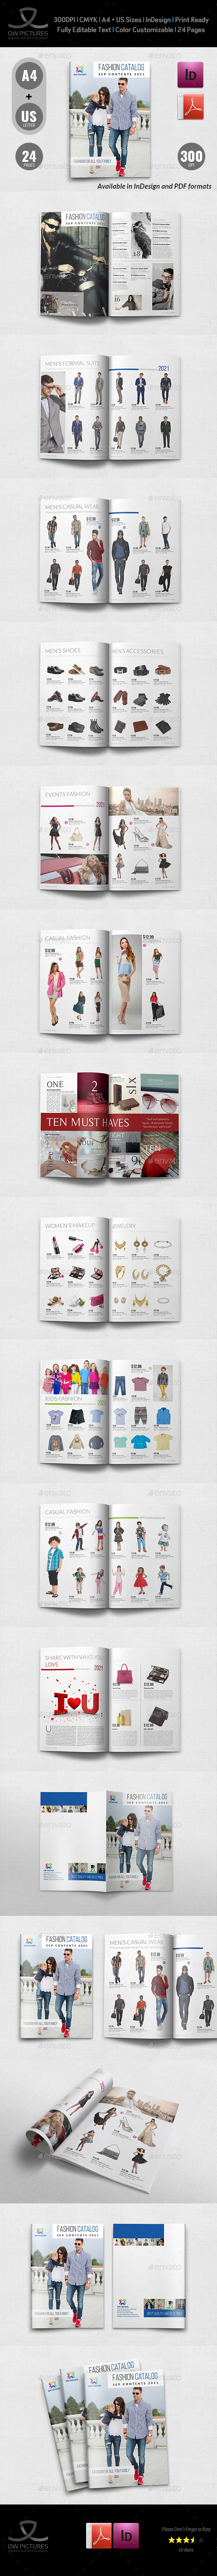 Fashion Catalog Brochure Template - 24 Pages - Catalogs Brochures